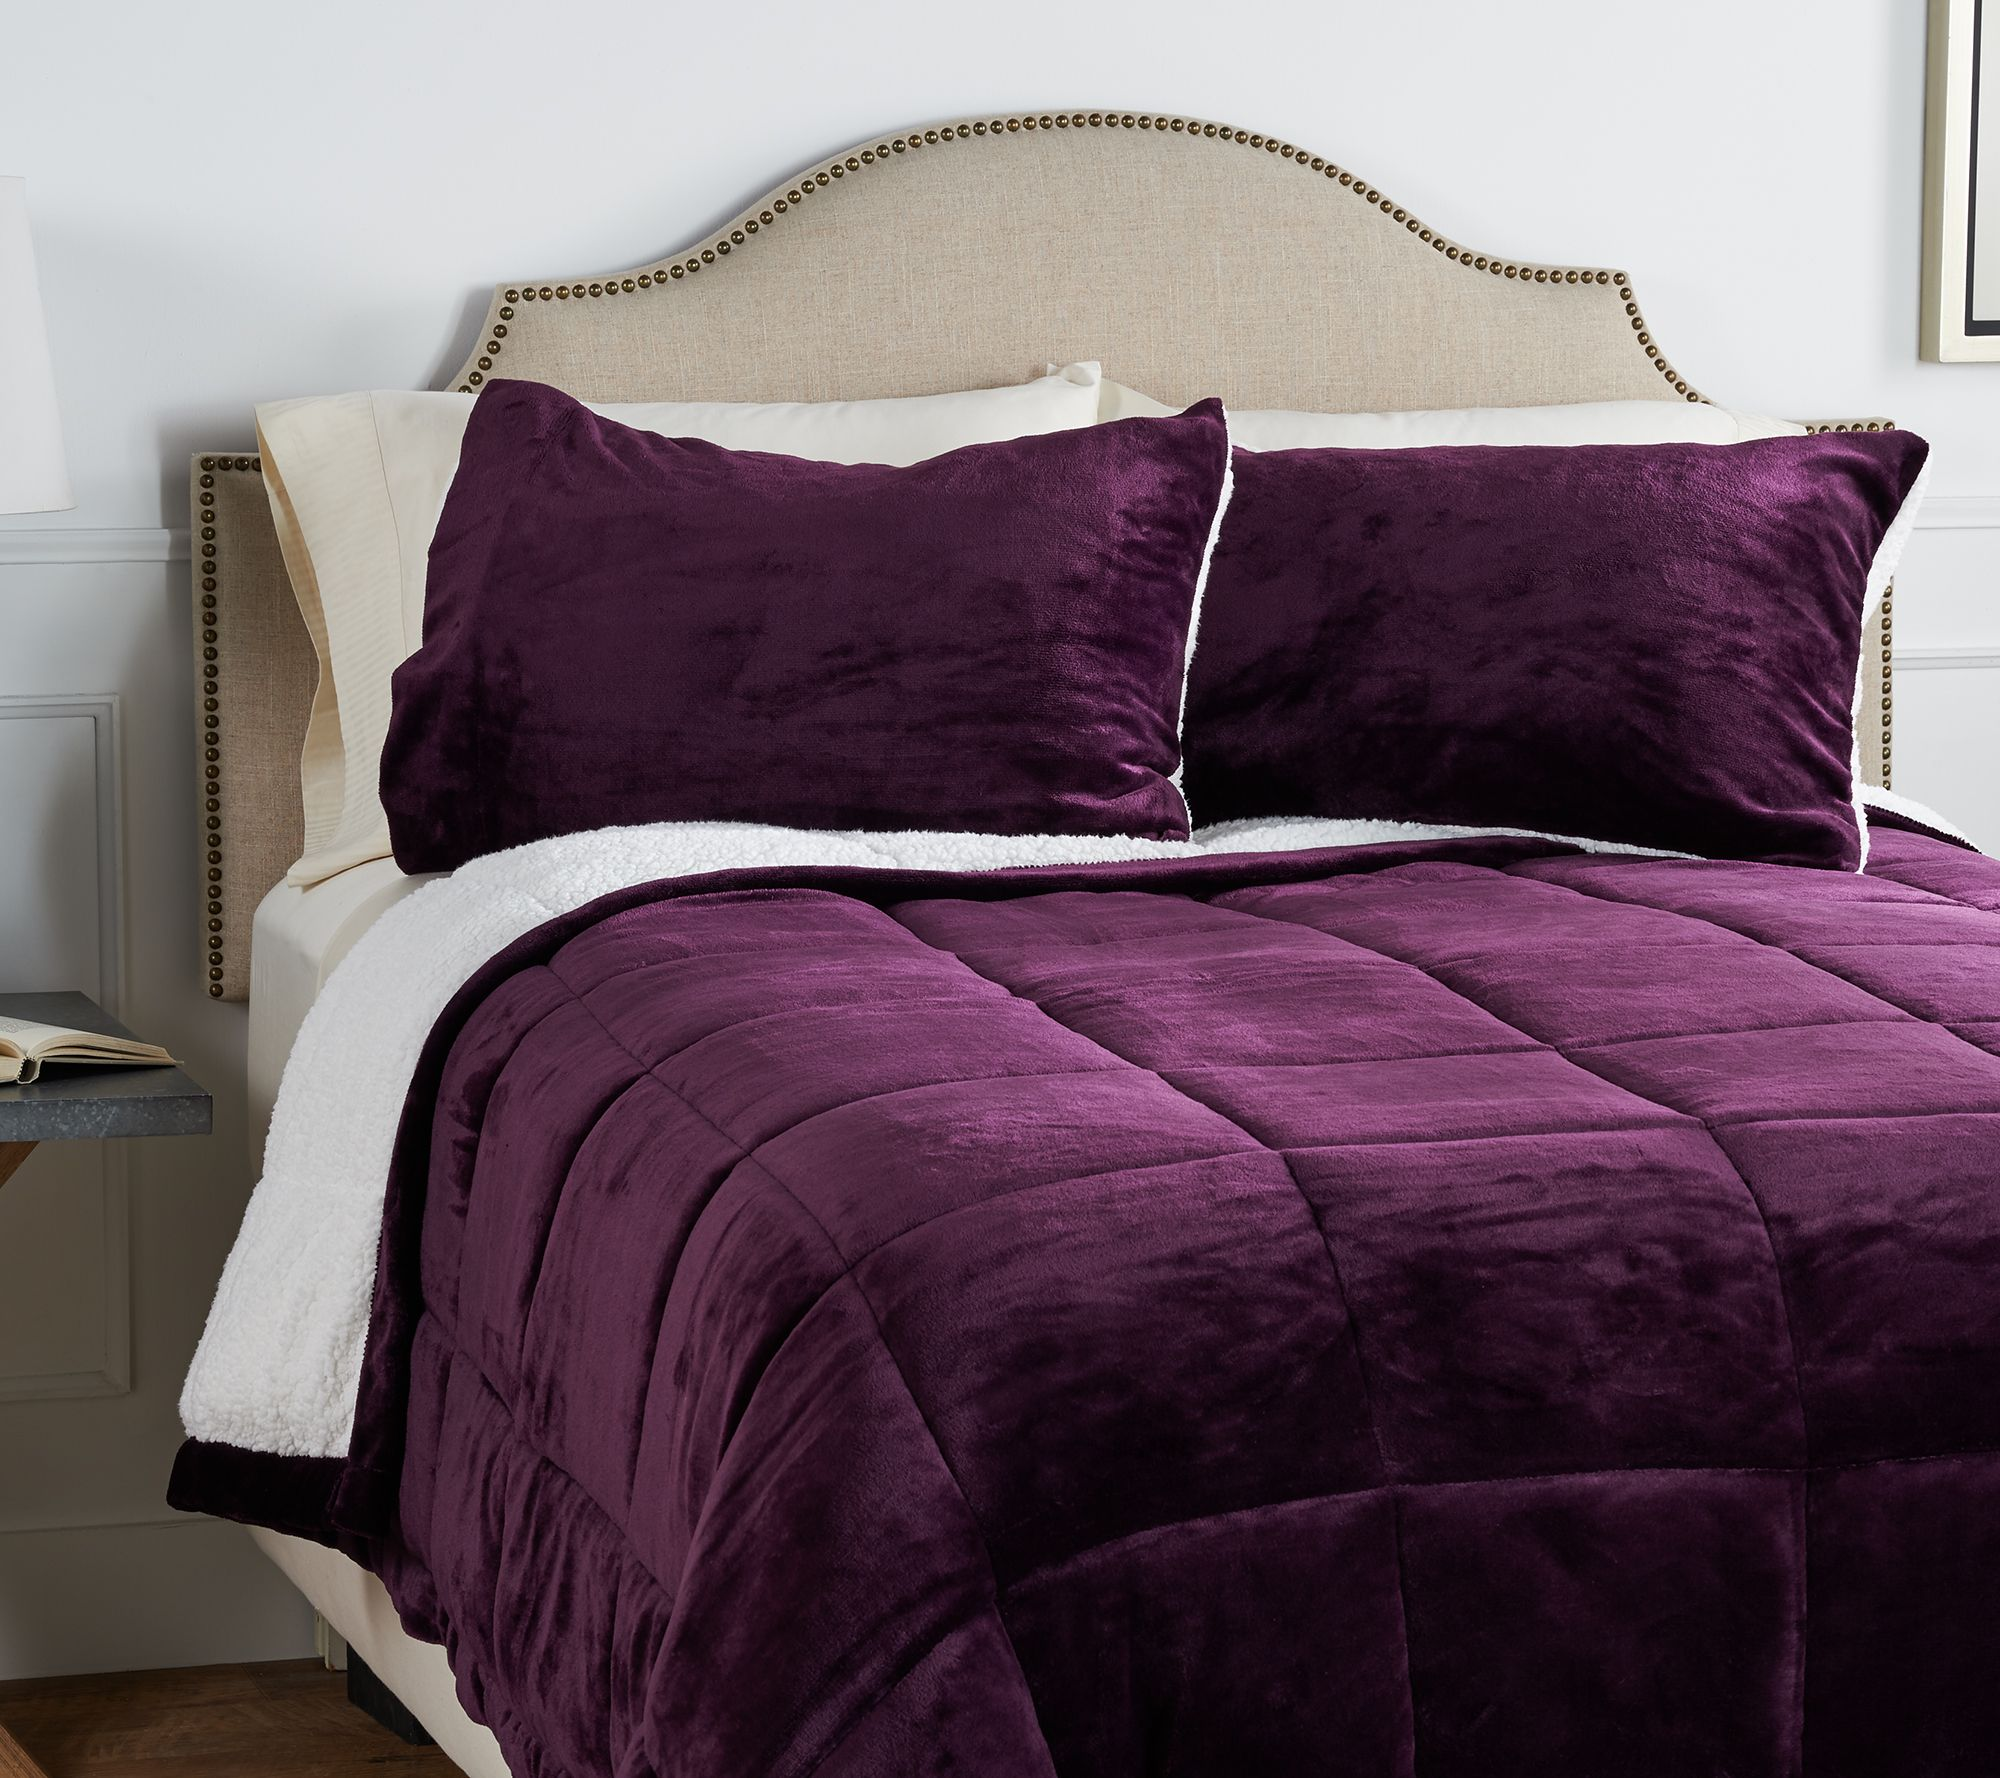 berkshire queen velvet soft reverse to sherpa comforter set h212295